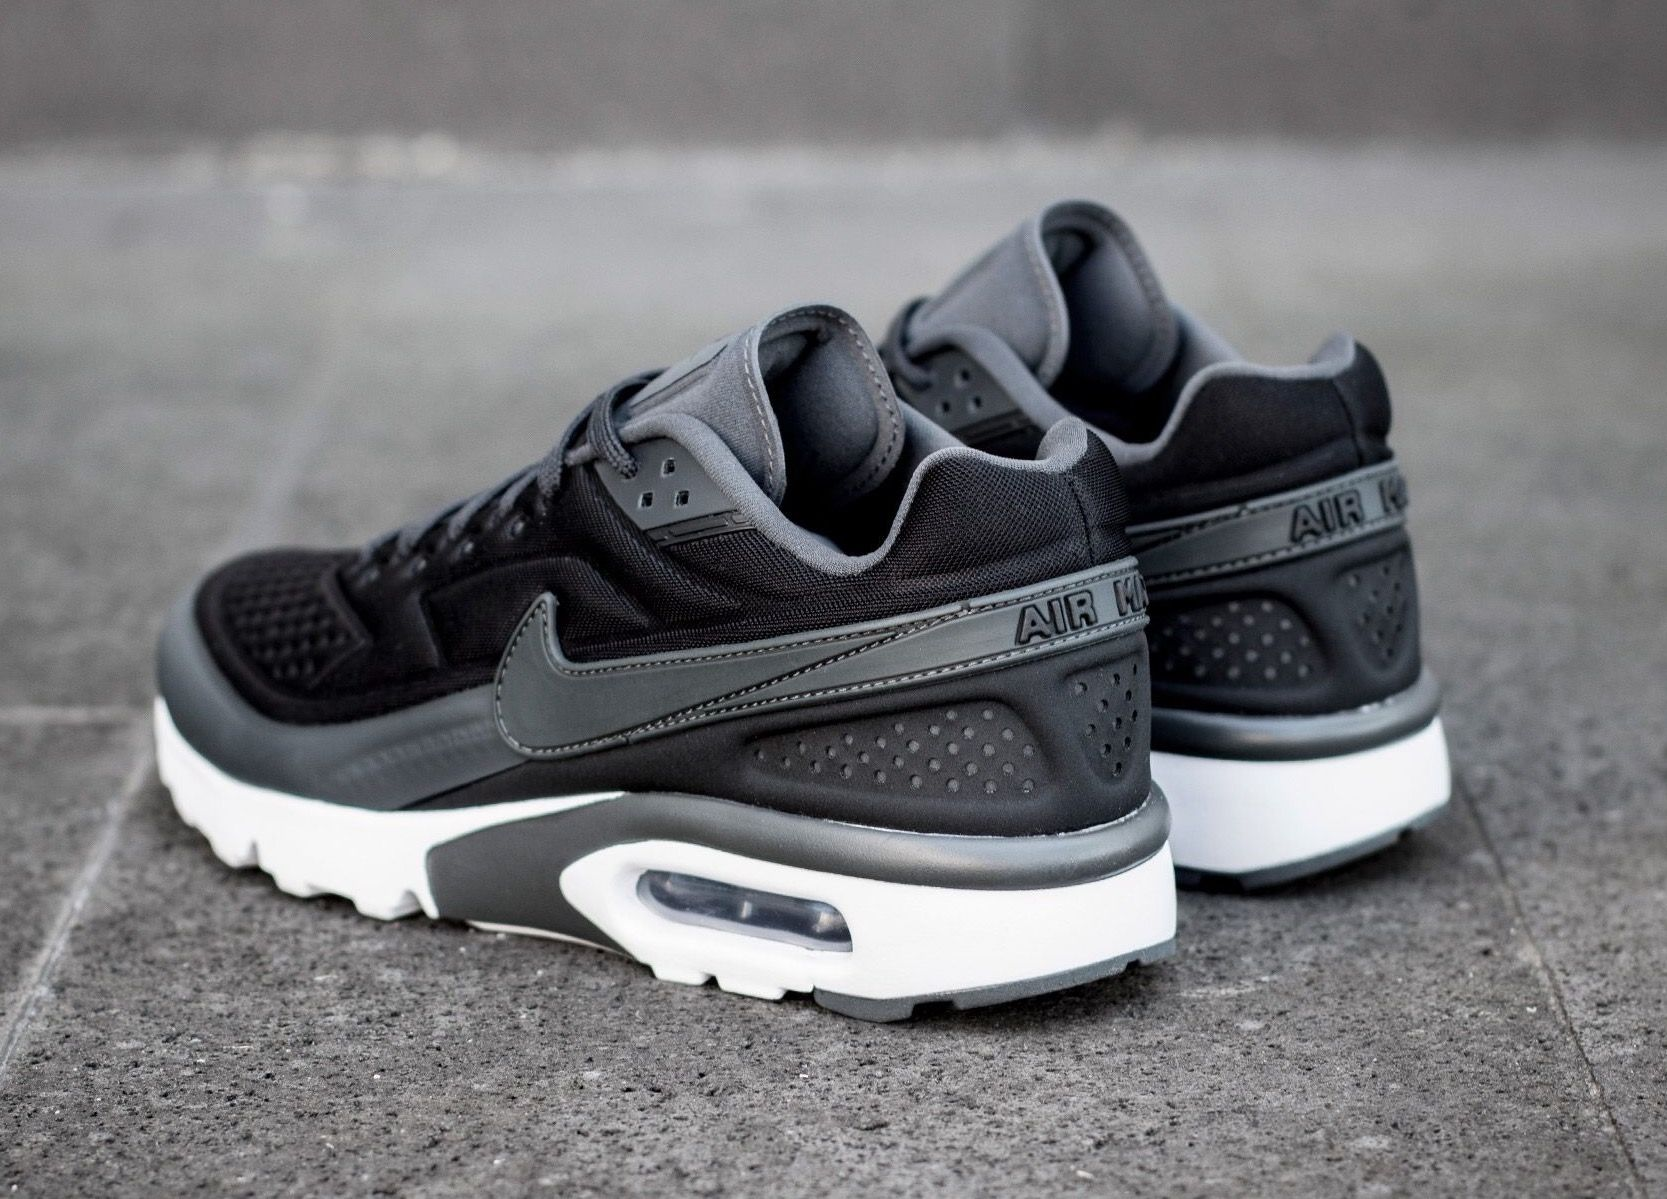 Nike Air Classic BW Ultra: Black/Grey | Nike shoes air max ...